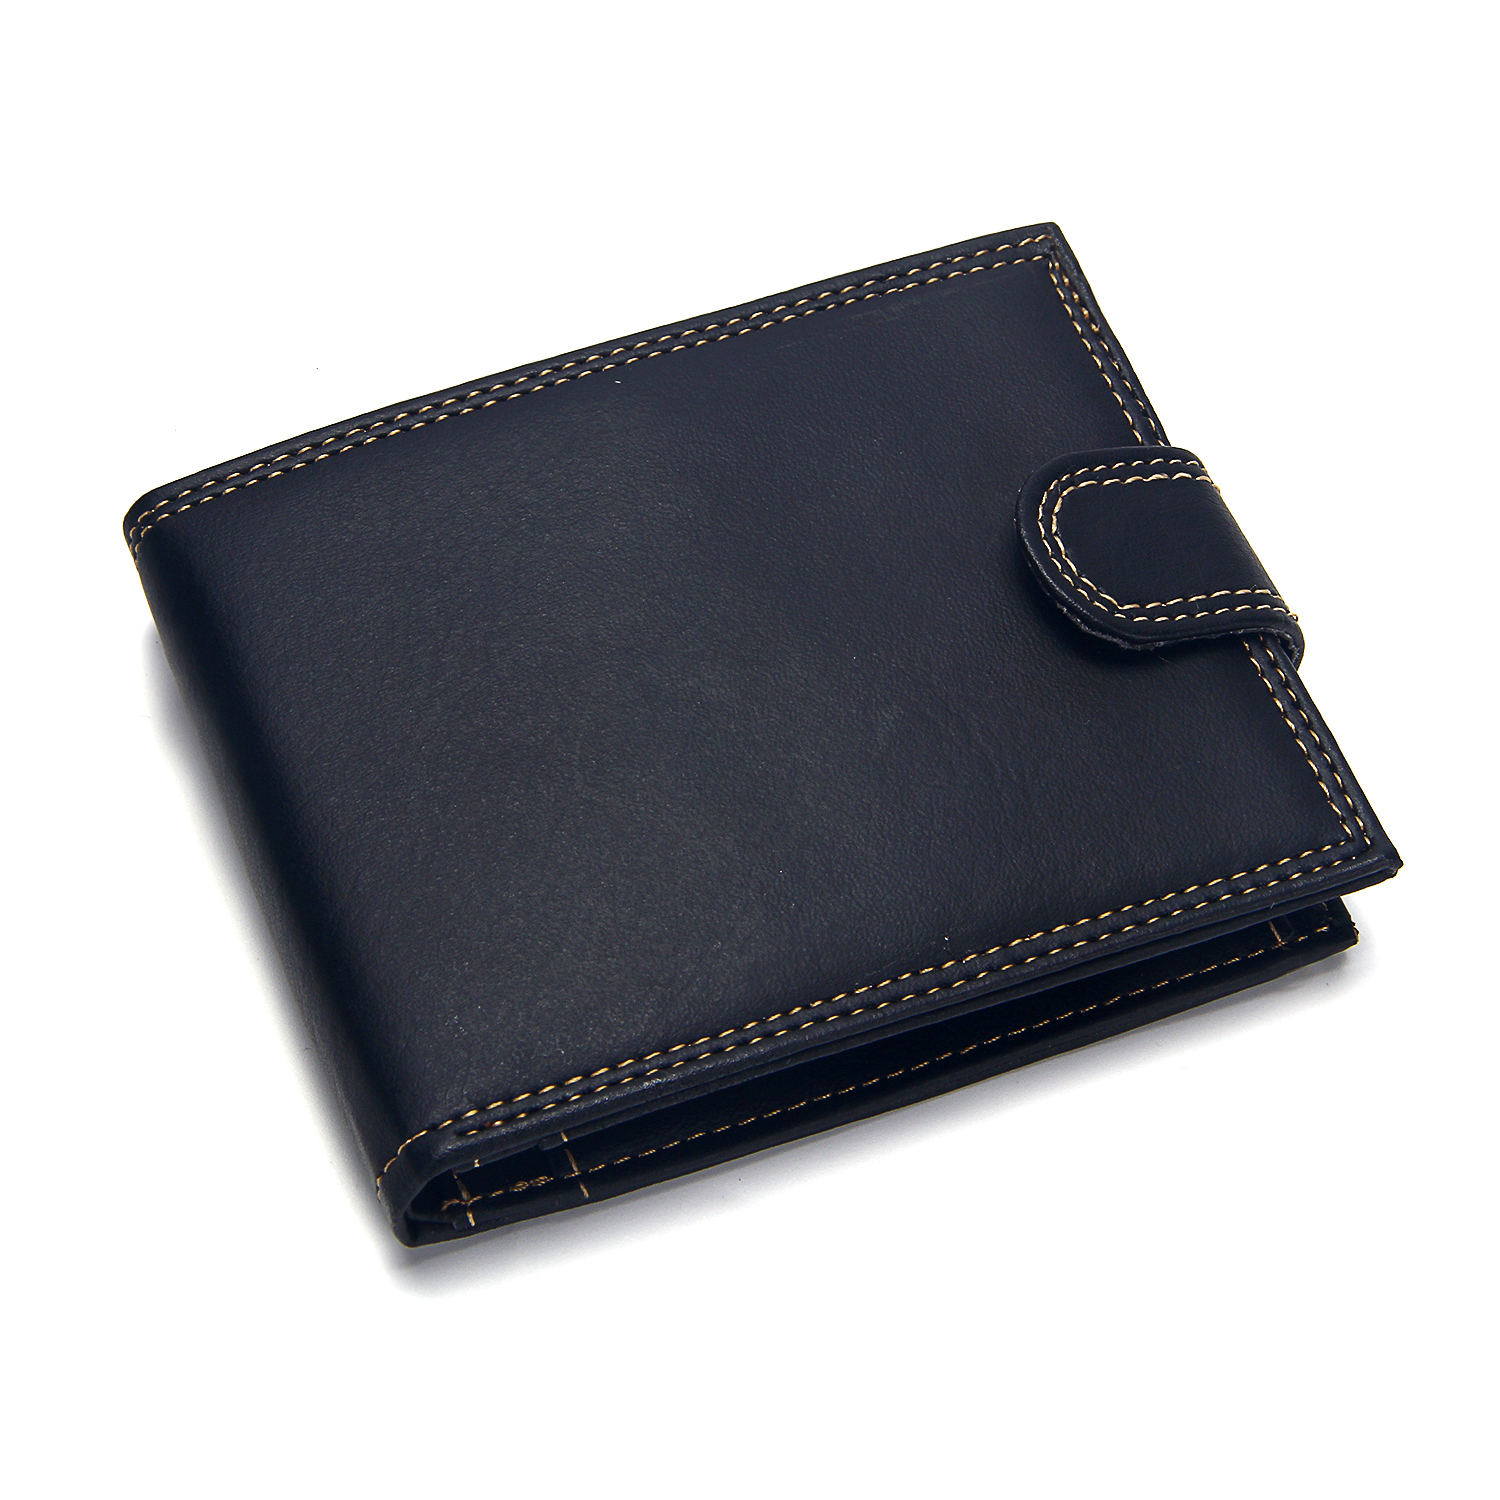 Fashion Hasp Short <font><b>Men</b></font> Wallet Vintage Male Coin Purse Card Holder Business Brief Small Clutch <font><b>Bag</b></font> New Brand <font><b>Money</b></font> Wallet For <font><b>Men</b></font> image